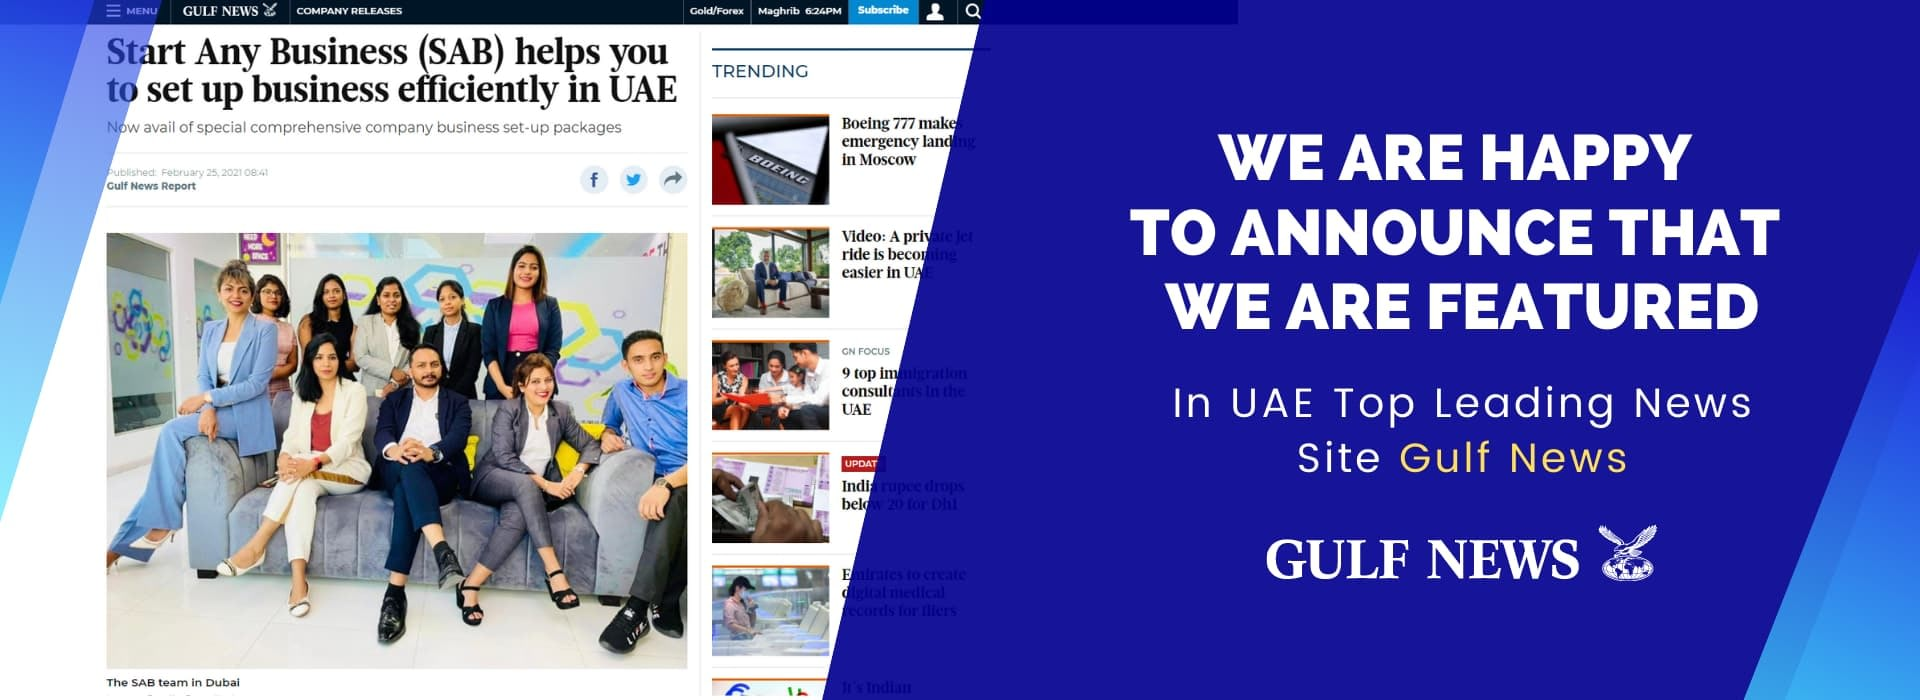 Start Any Business featured in gulf news